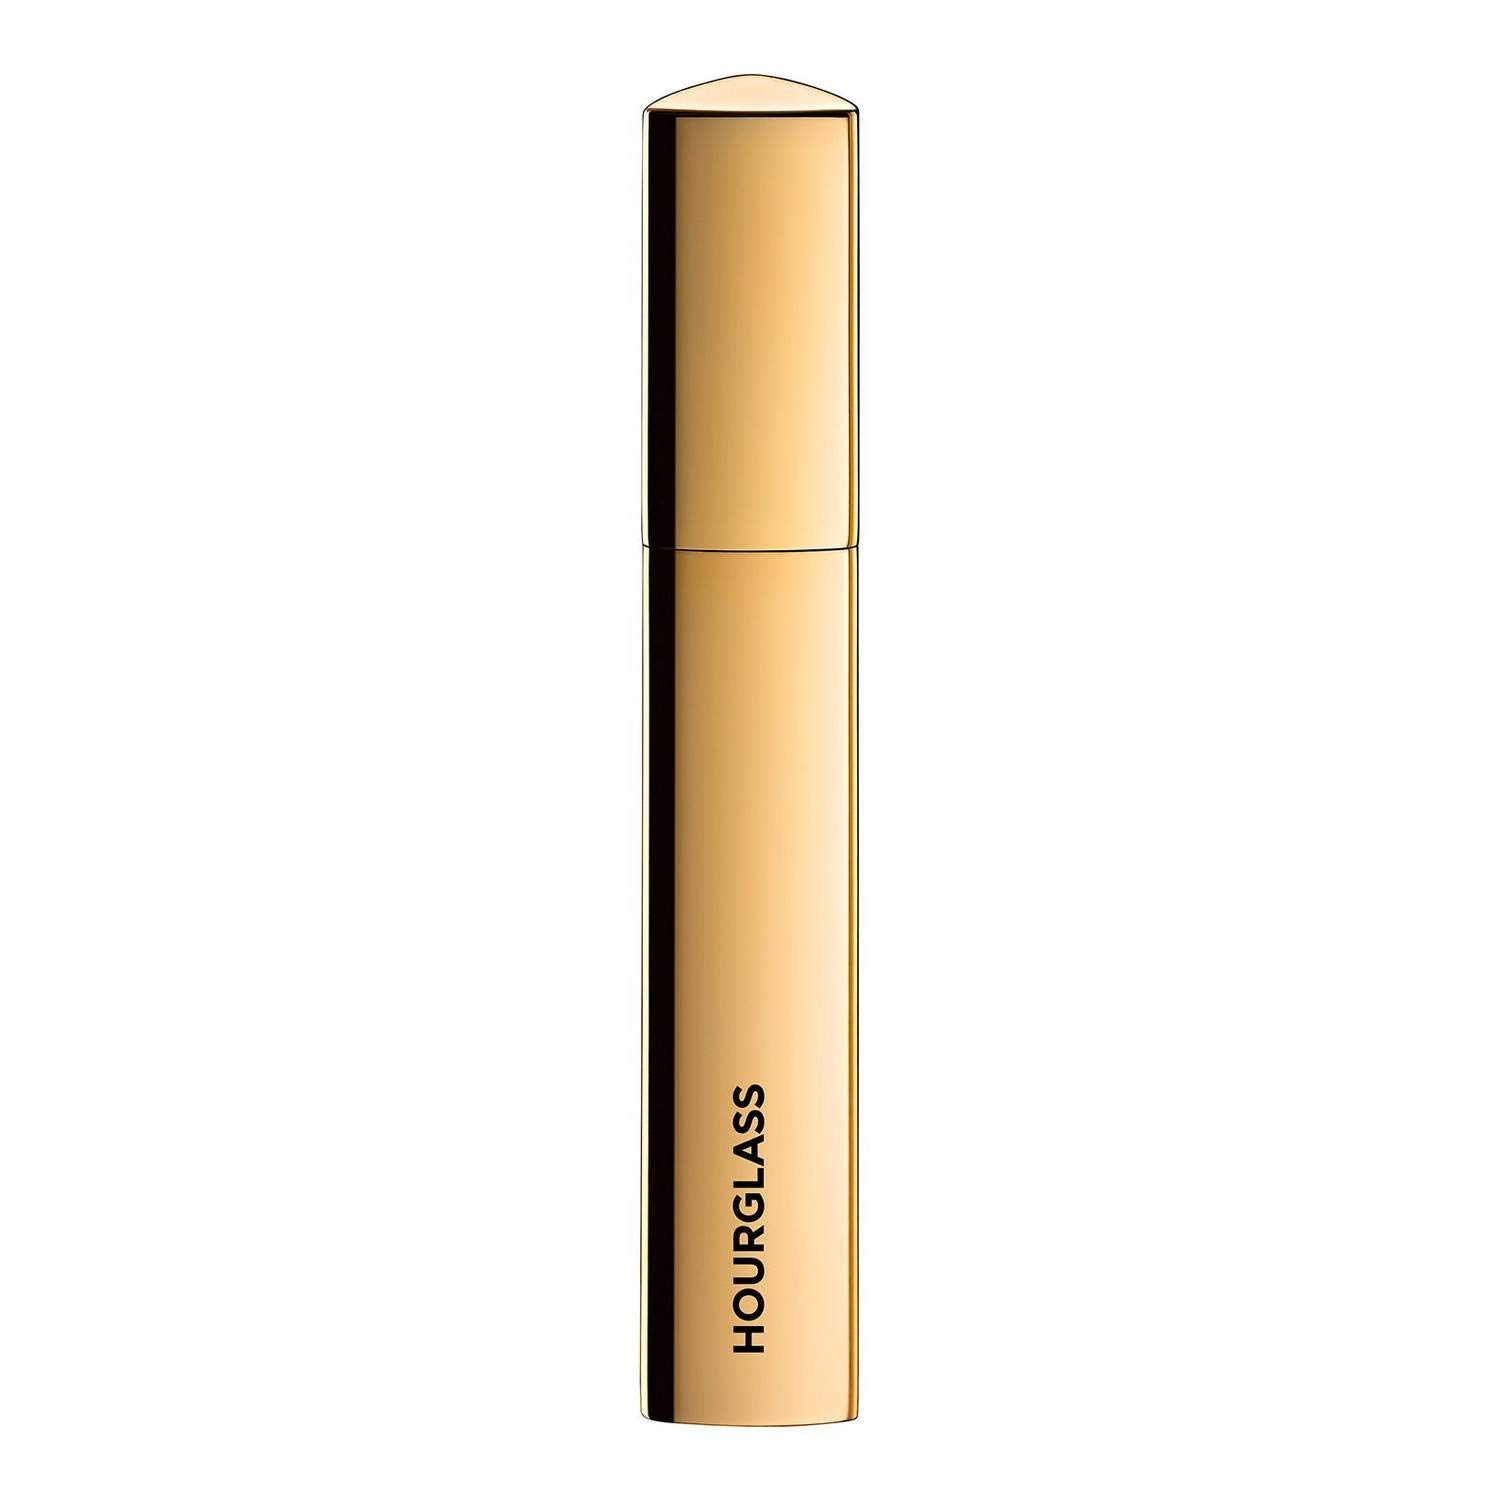 HOURGLASS Caution Extreme Lash Mascara (0.33 oz 9.4 g) by Unknown